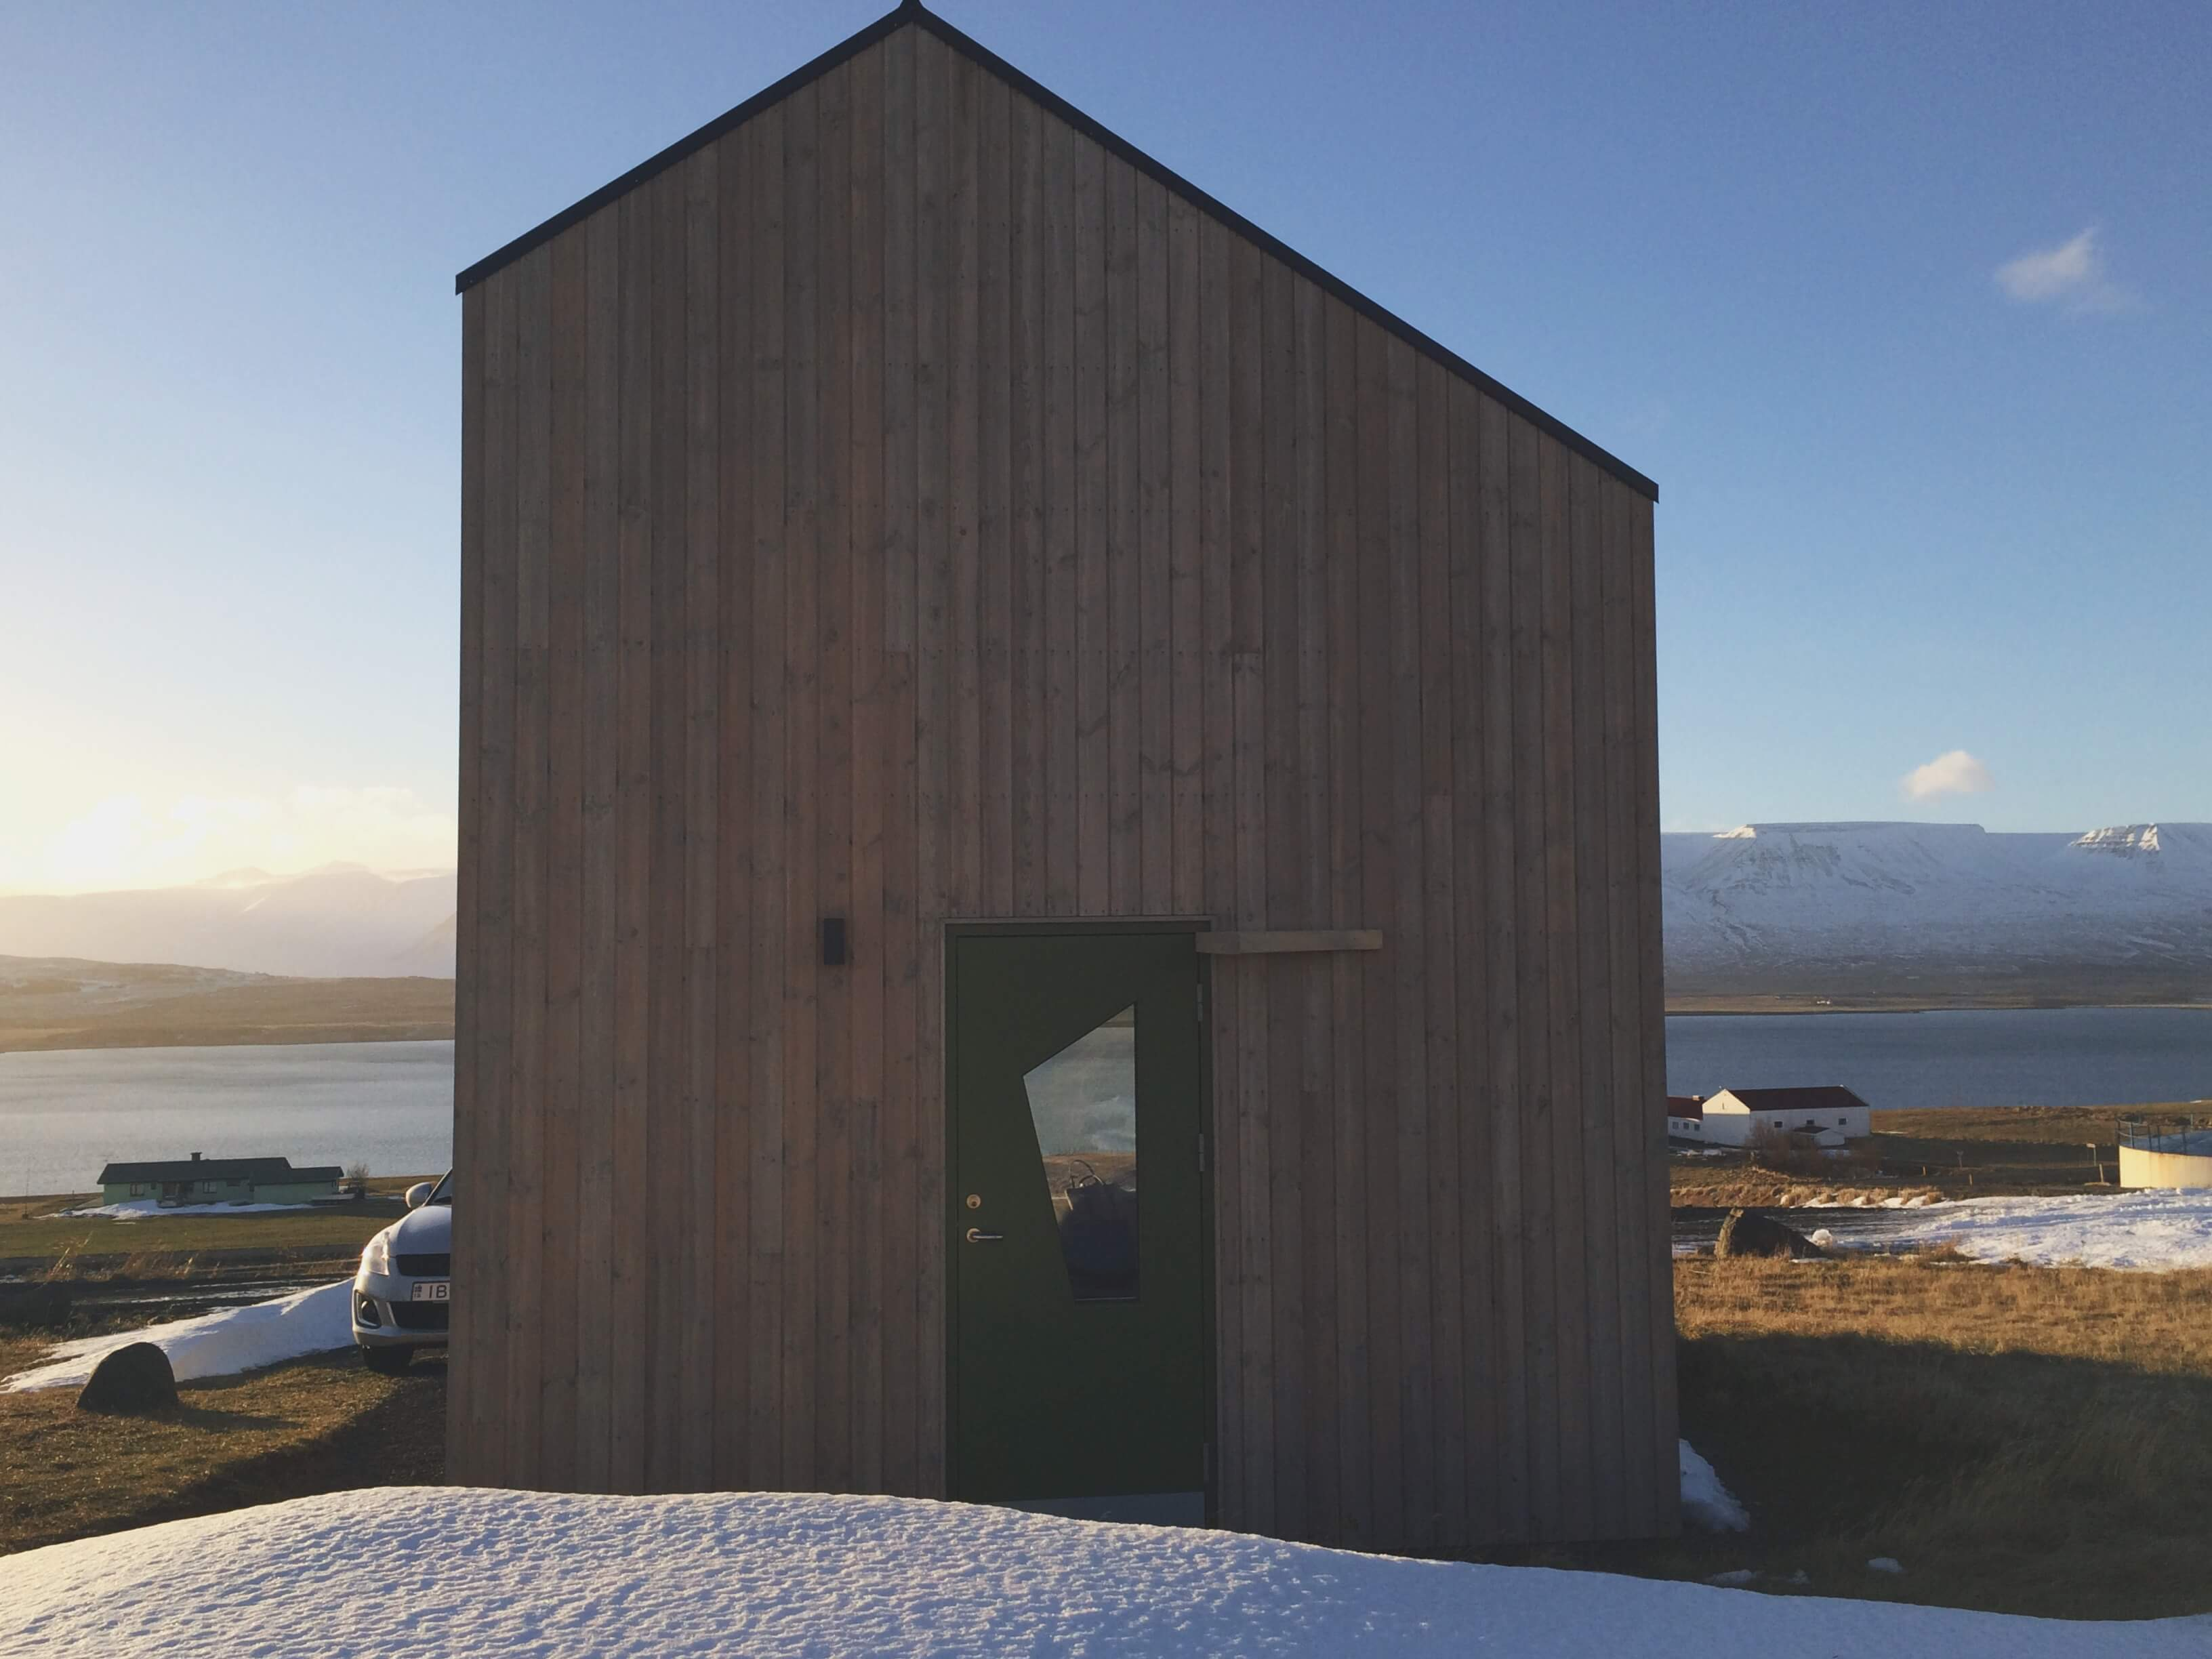 Akureyri unique cabin from Airbnb, Iceland Budget Travel